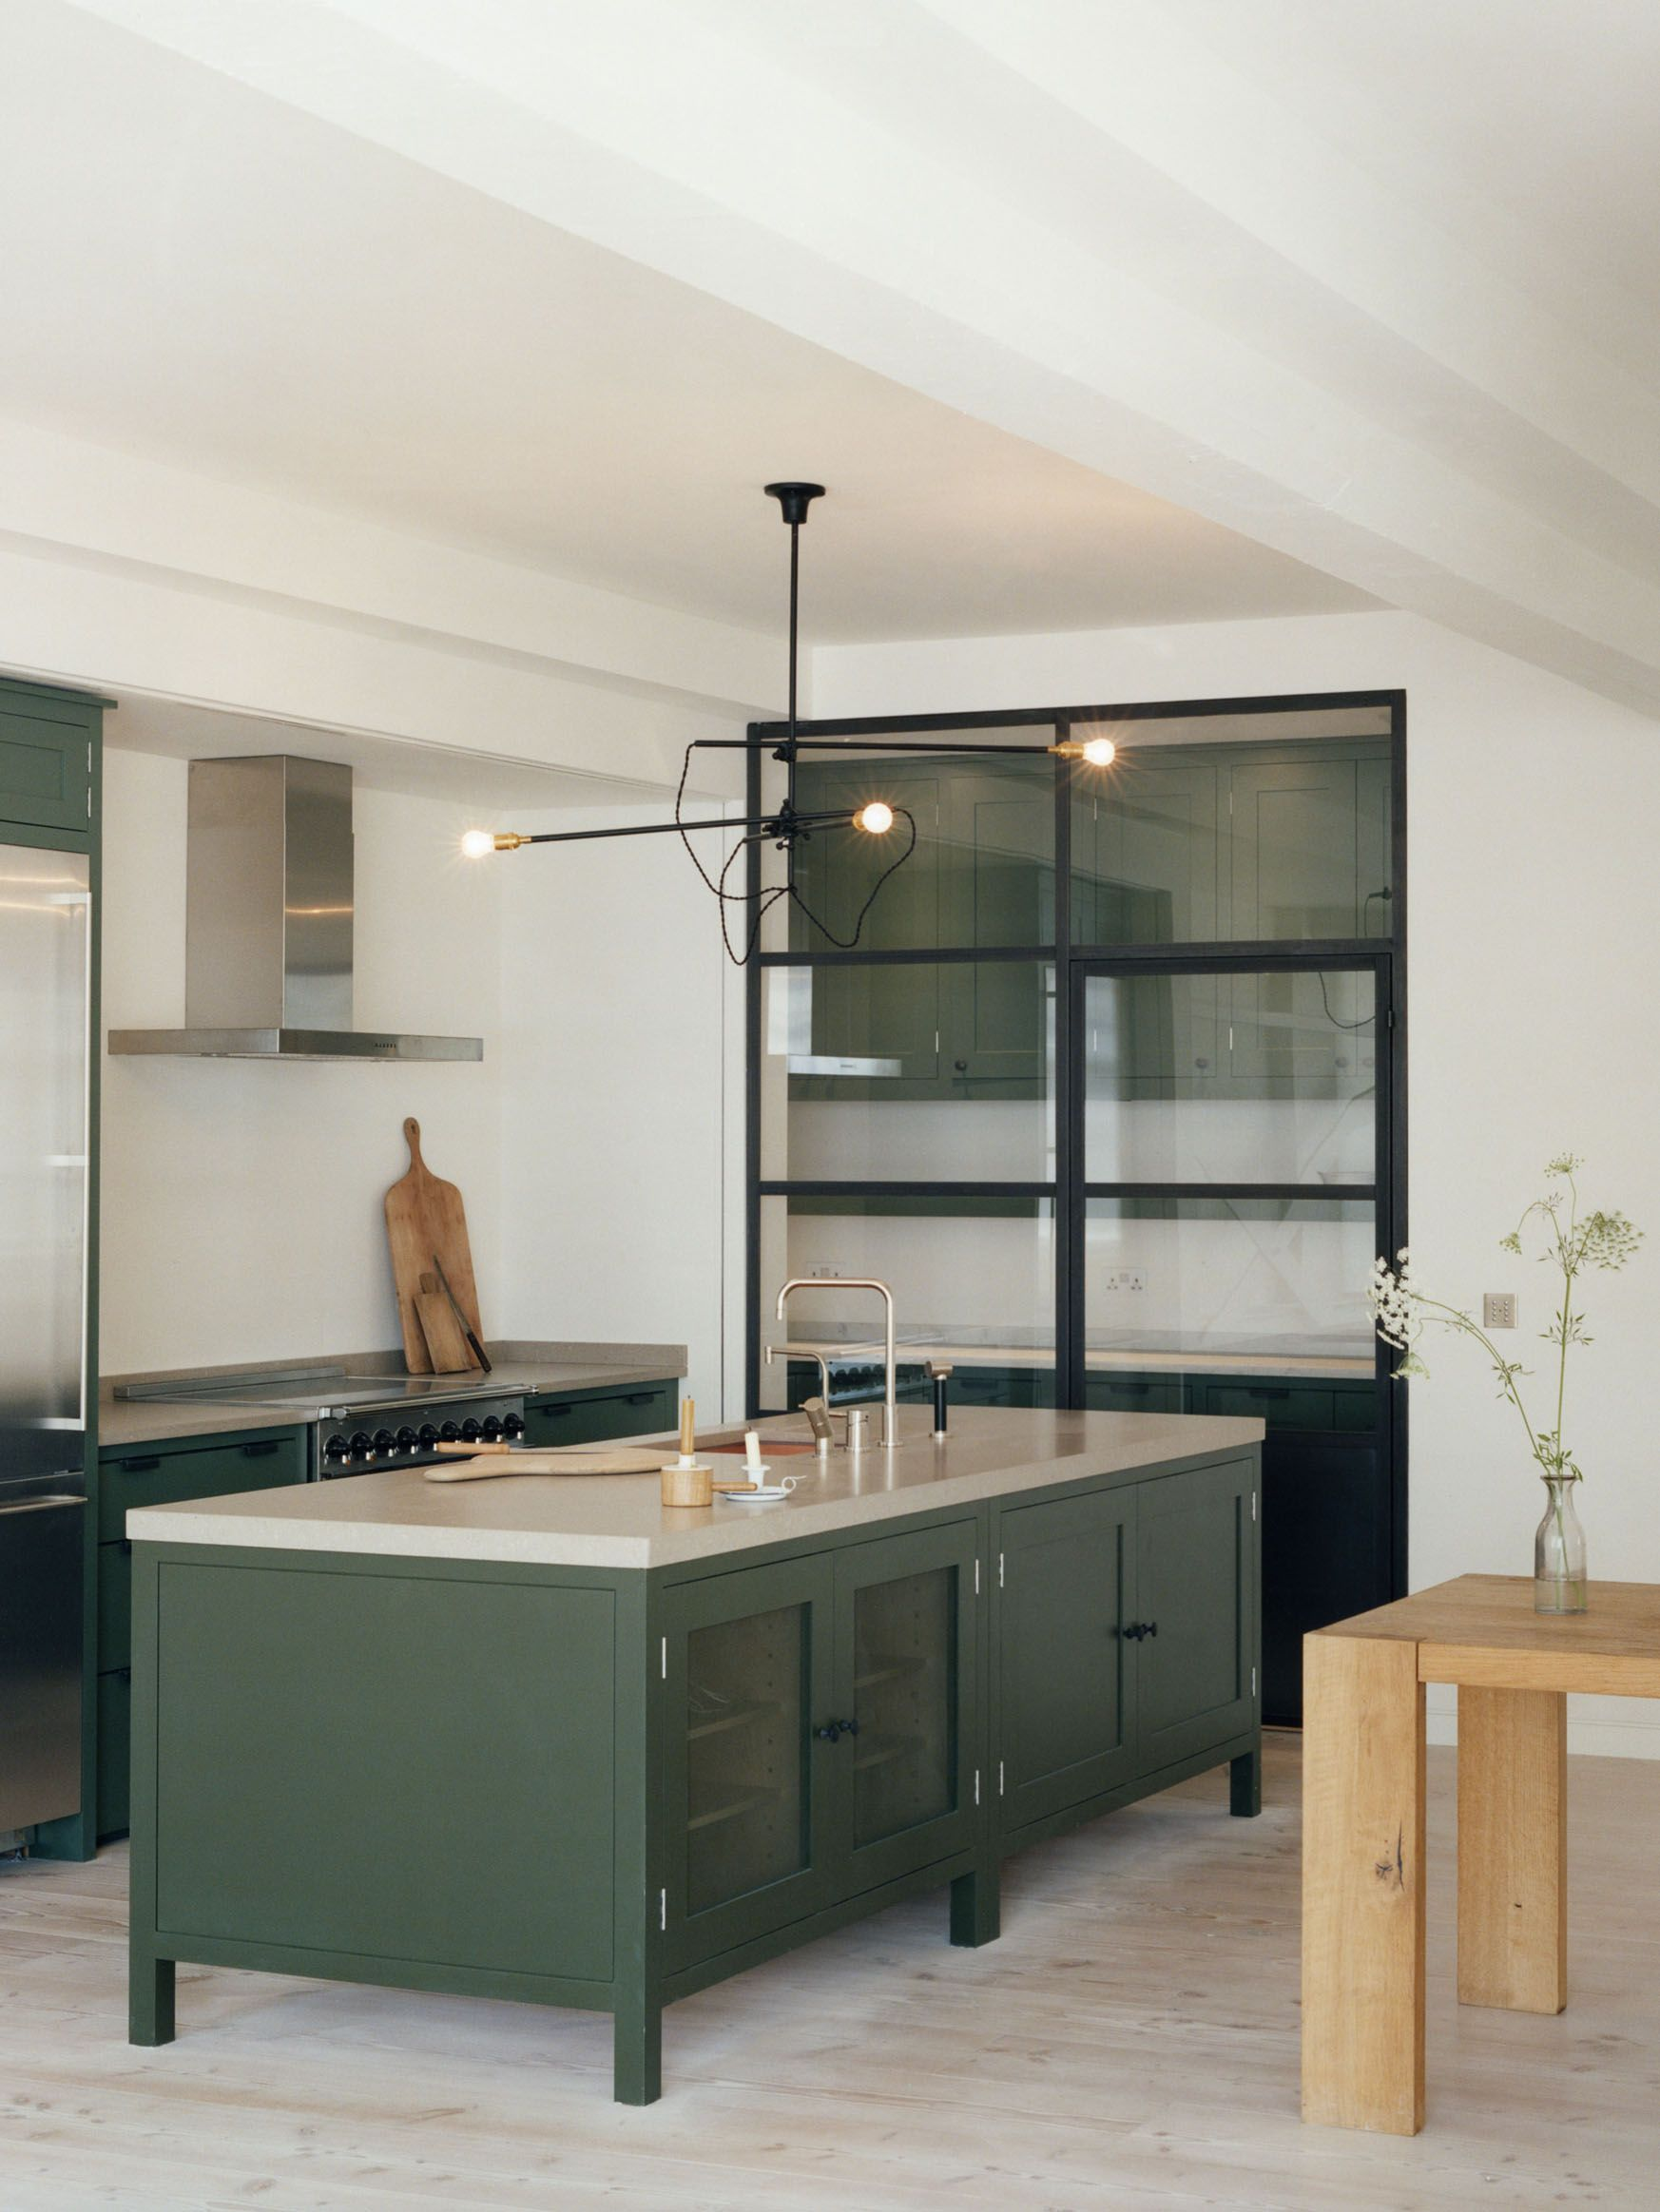 Green Cabinet Kitchens | Lexi Westergard Design Blog | In the ...